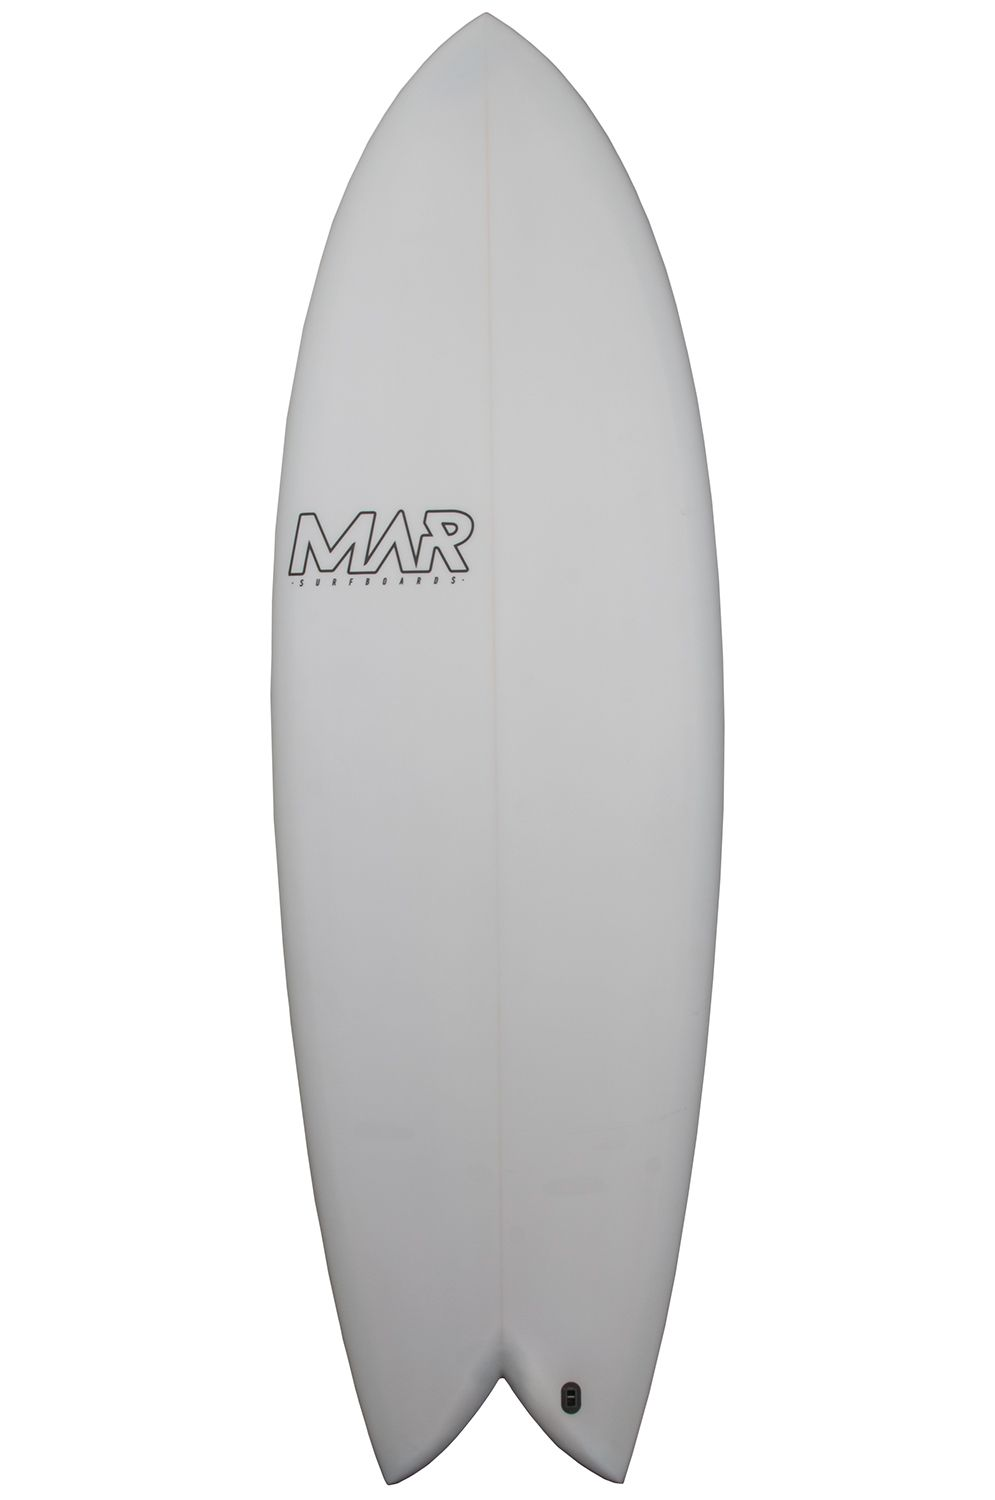 Mar Surf Board 5'3 THE 2 BLUE LCT Fish Tail - Color FCS II Twin Tab 5ft3